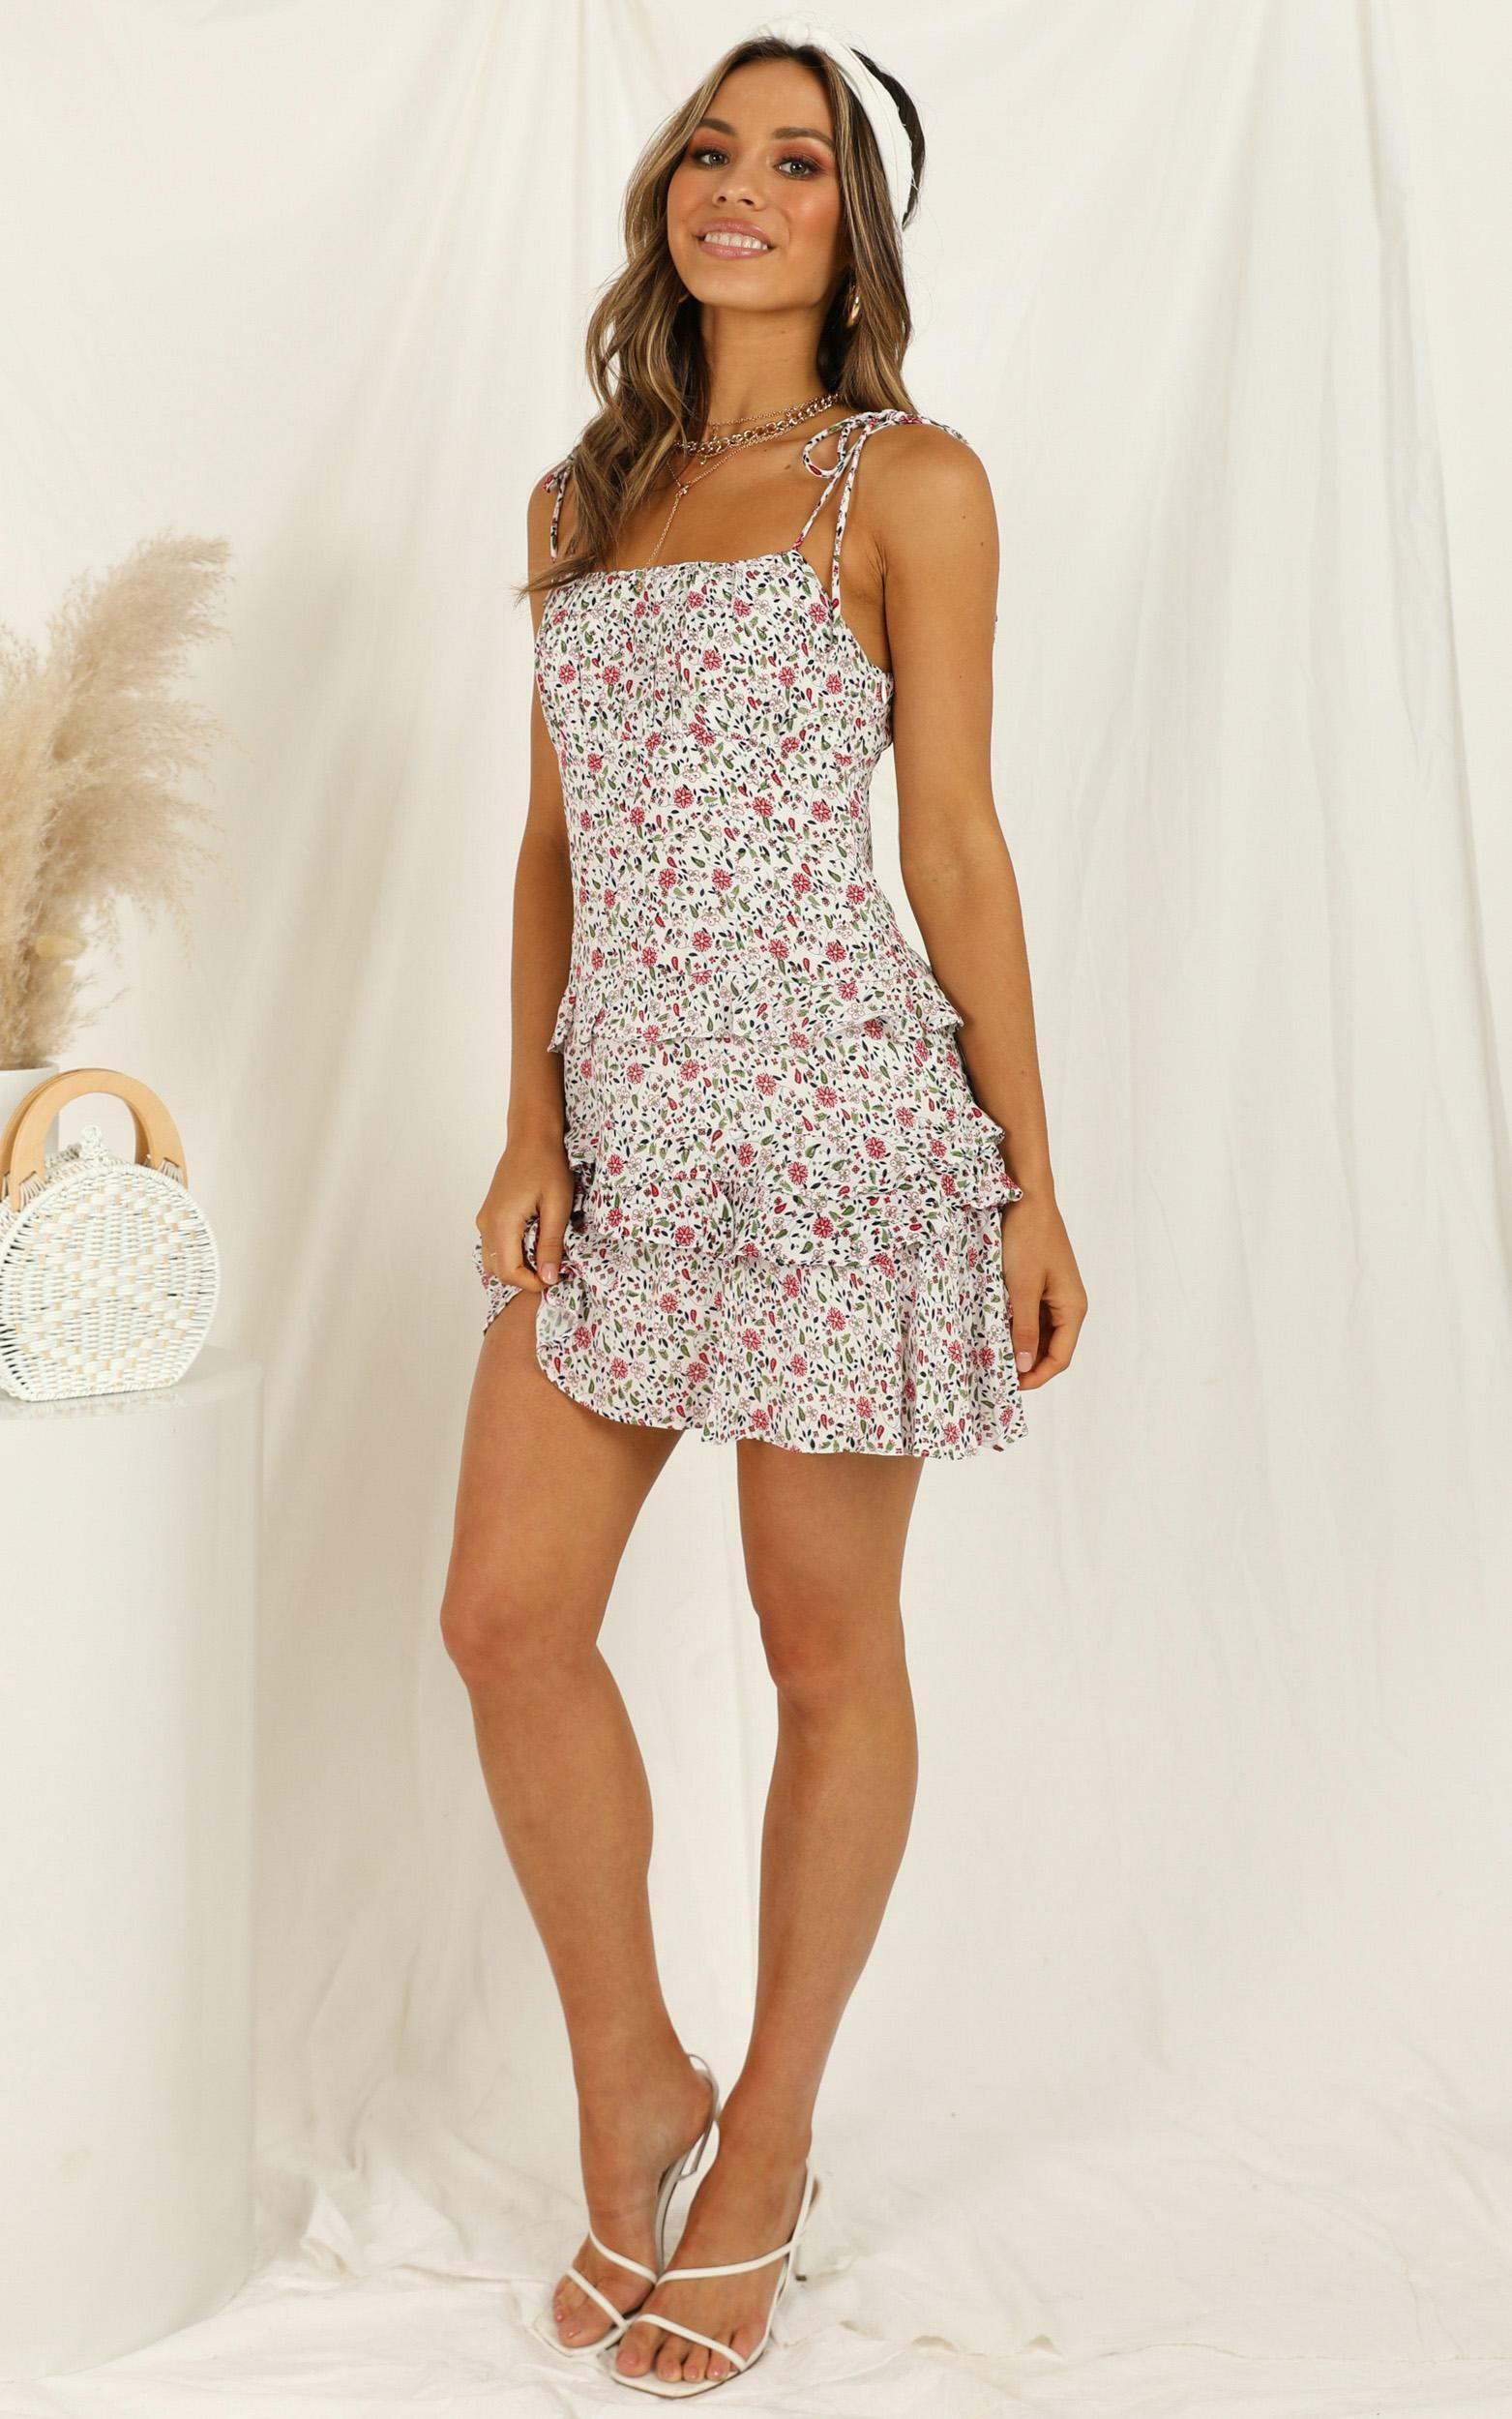 Puffy Clouds dress in white floral - 12 (L), White, hi-res image number null